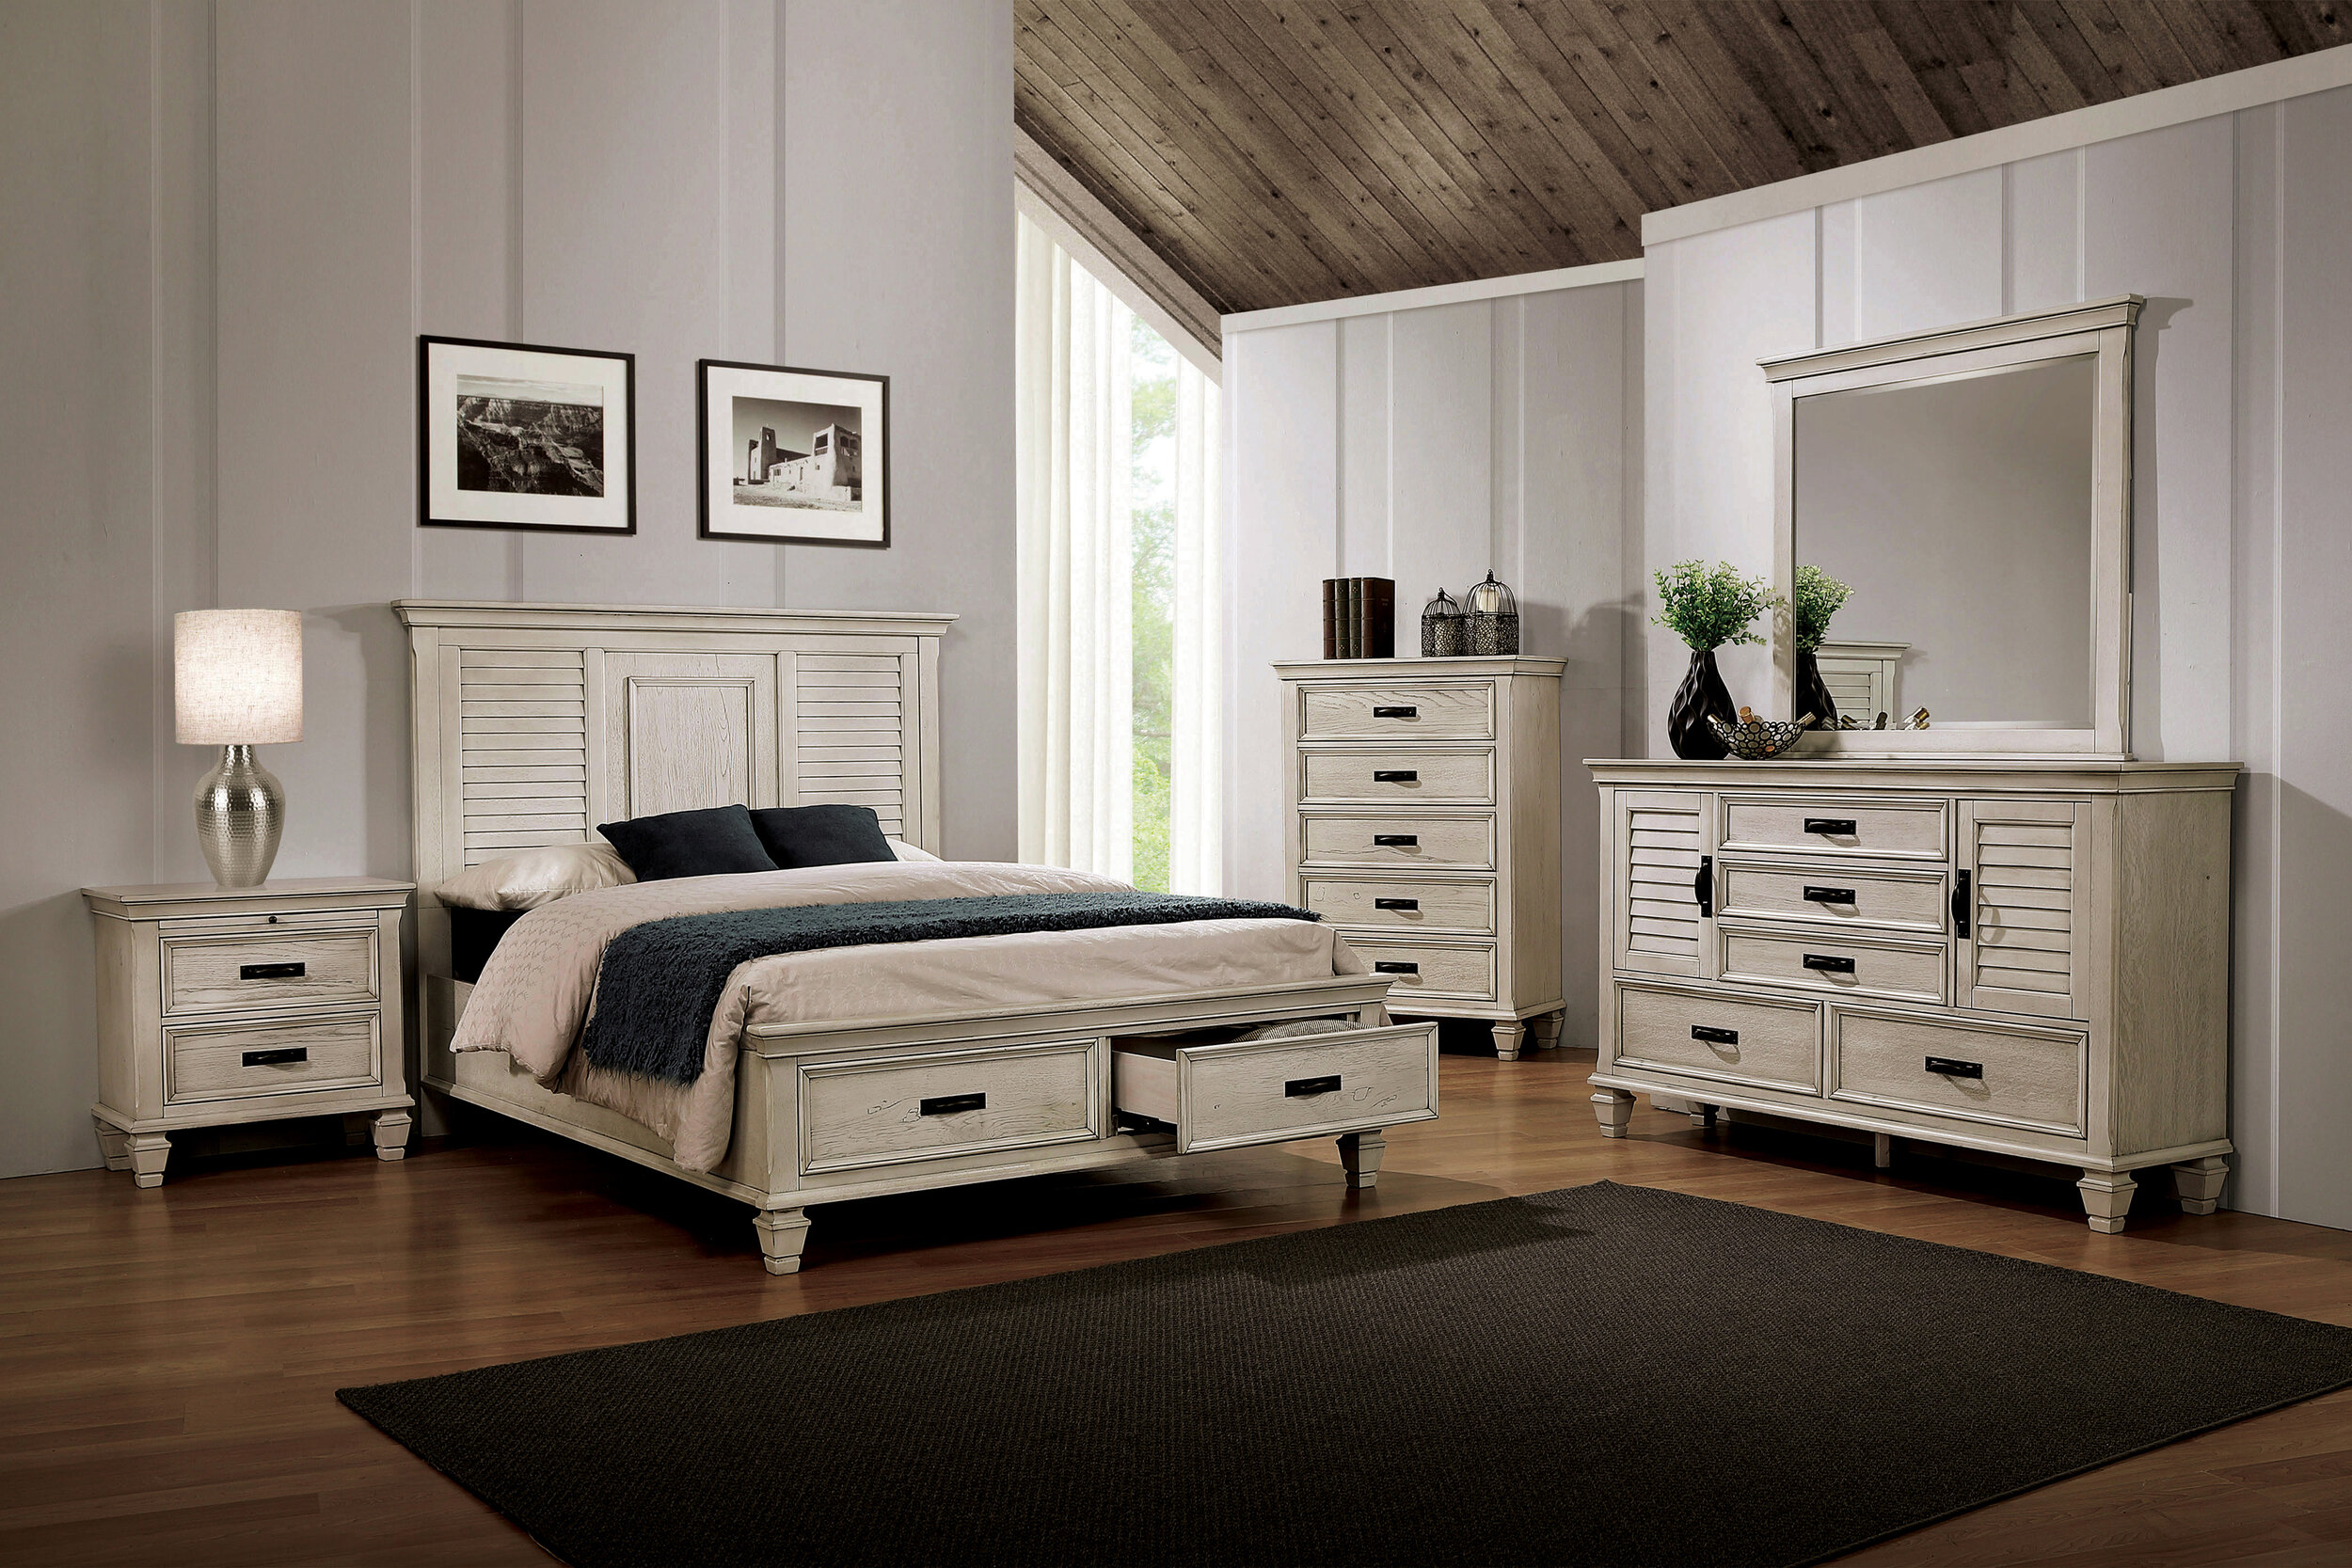 FRANCO BEDROOM COLLECTION SELECT ITEMS AVAILABLE / CALL FOR AVAILABILITY